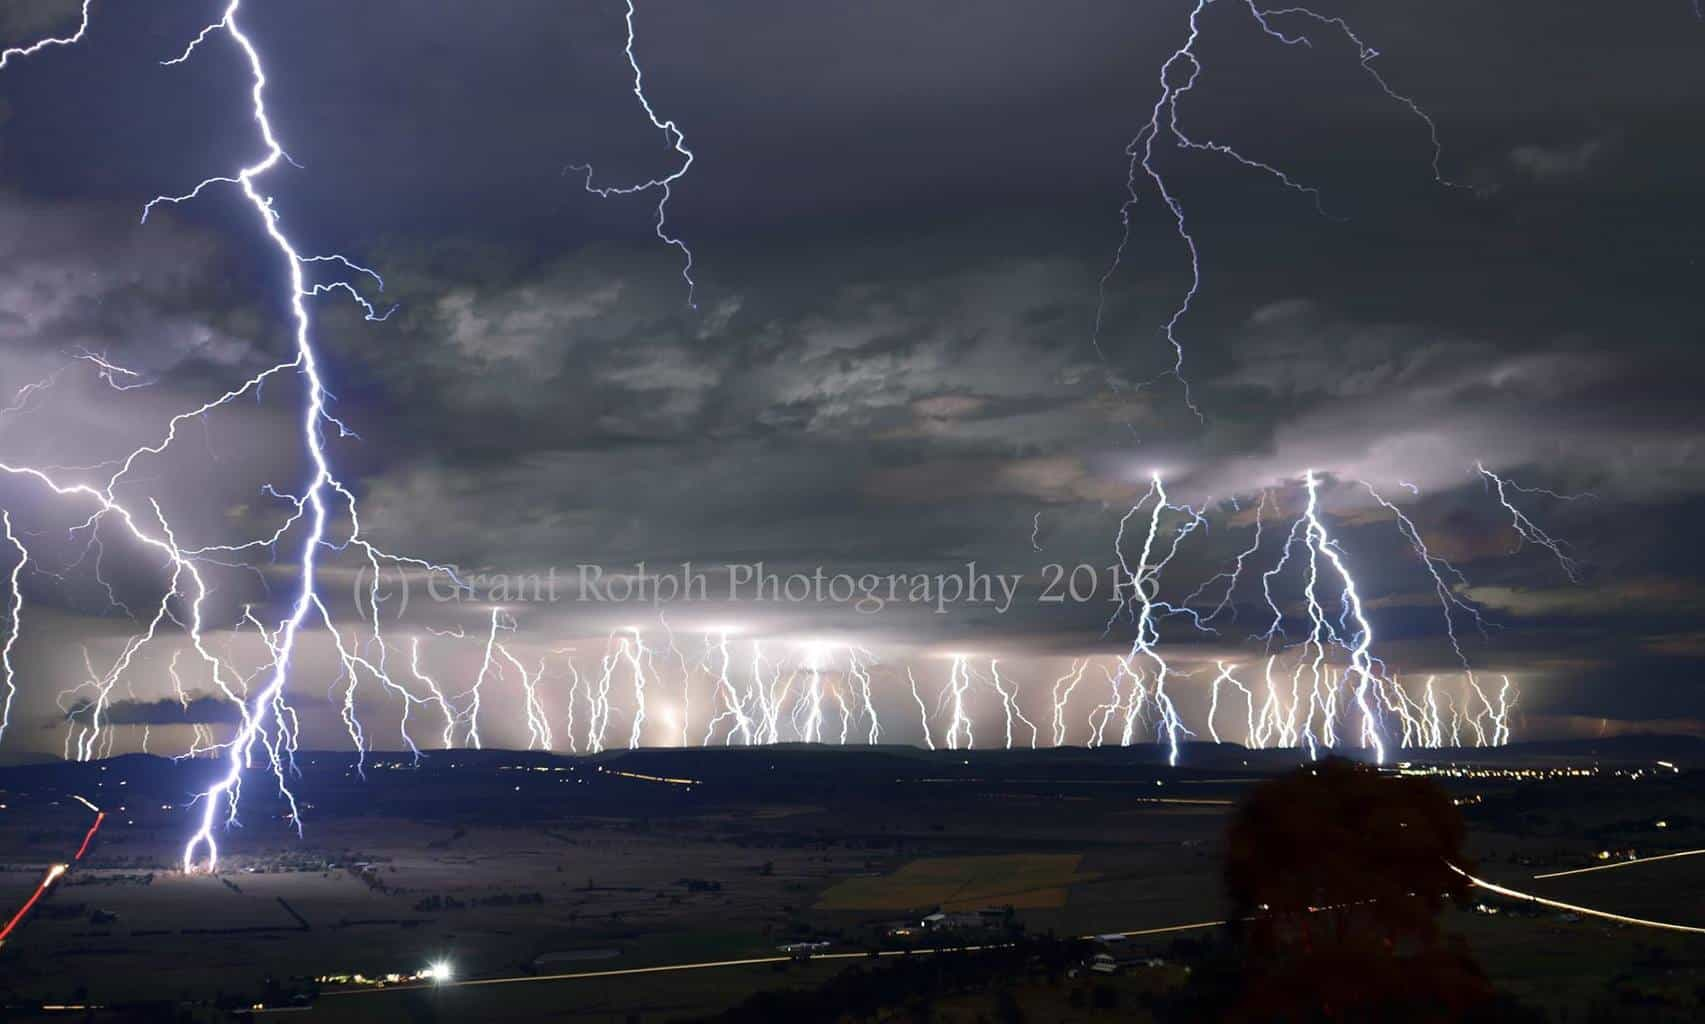 Super stack! South East Queensland Australia 26/10/15. This is a composite of 45x30sec images (its tough not moving or bumping the camera for so long) The closest strike that lit the valley was just over 2000m away. Taken from Panoramic Drive, South Toowoomba. Enjoy!